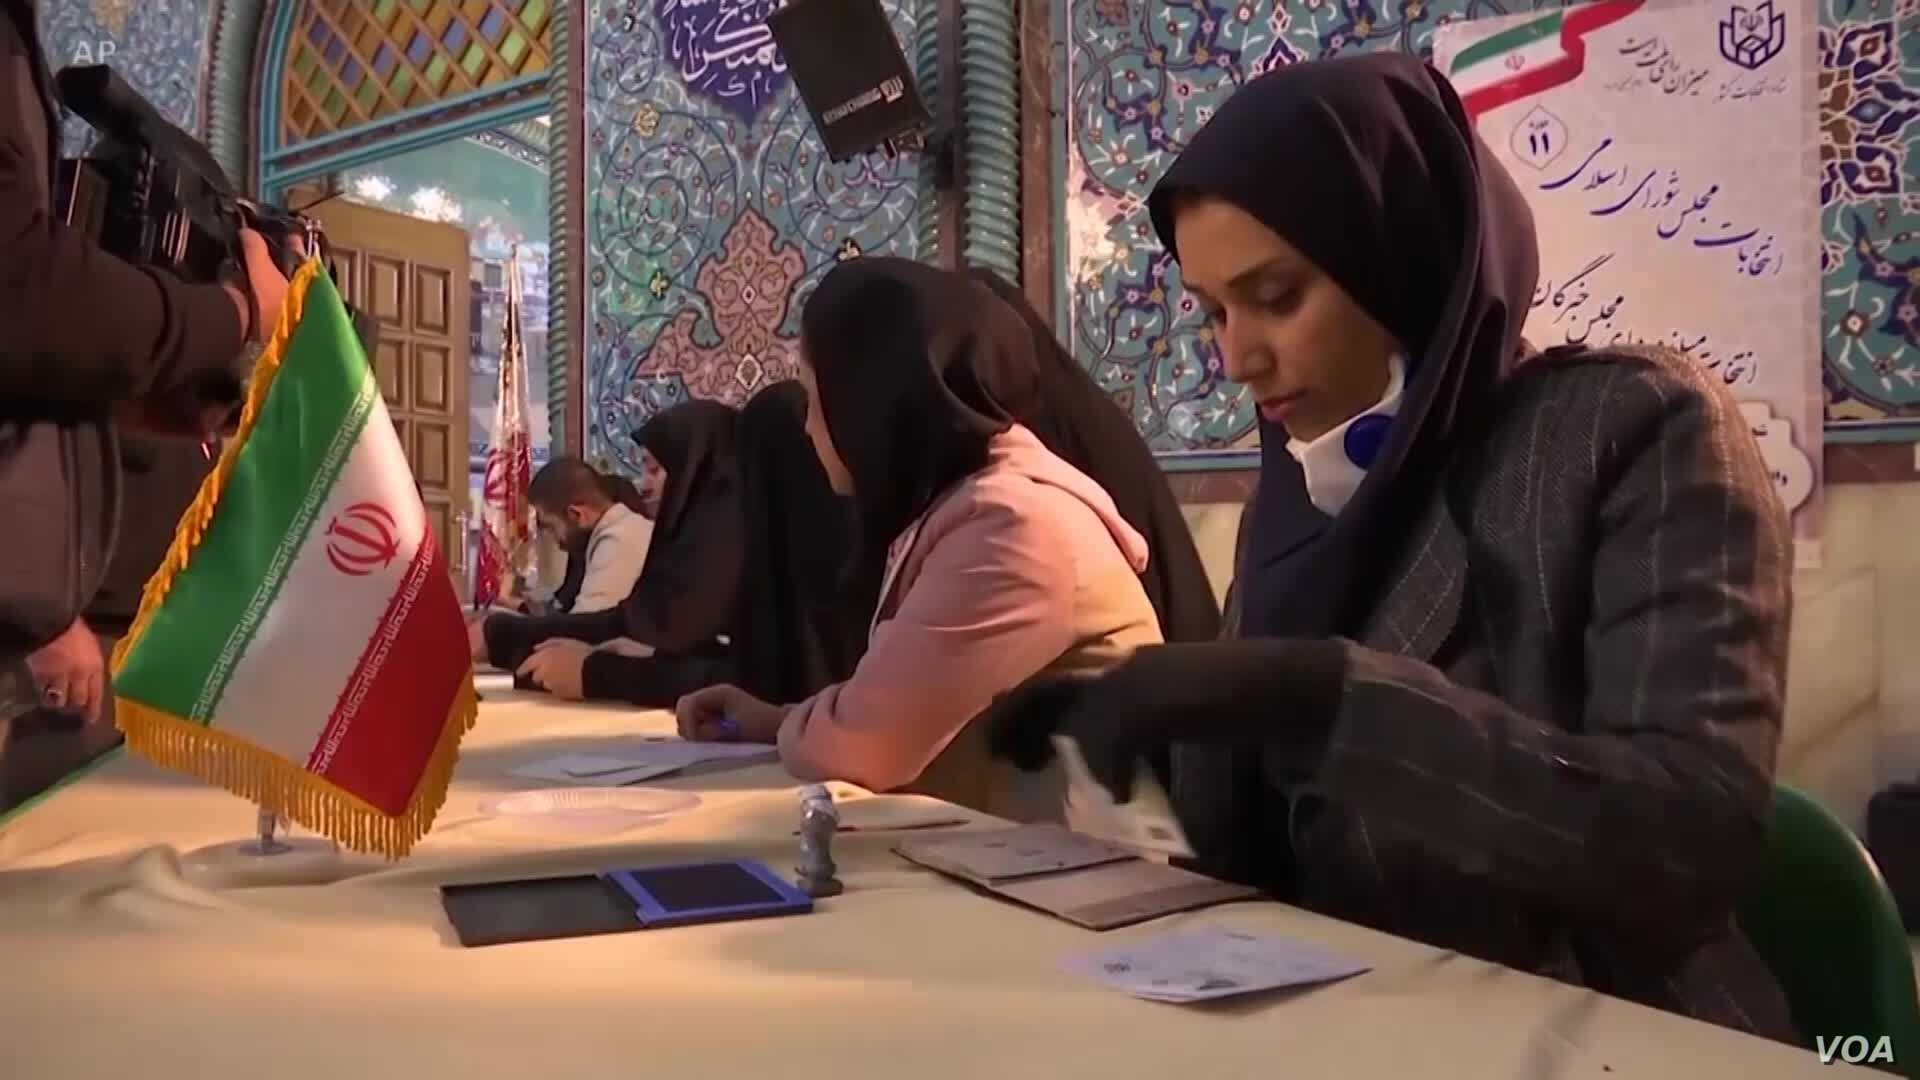 Angry Iranians Use Social Media to Encourage Election Boycott